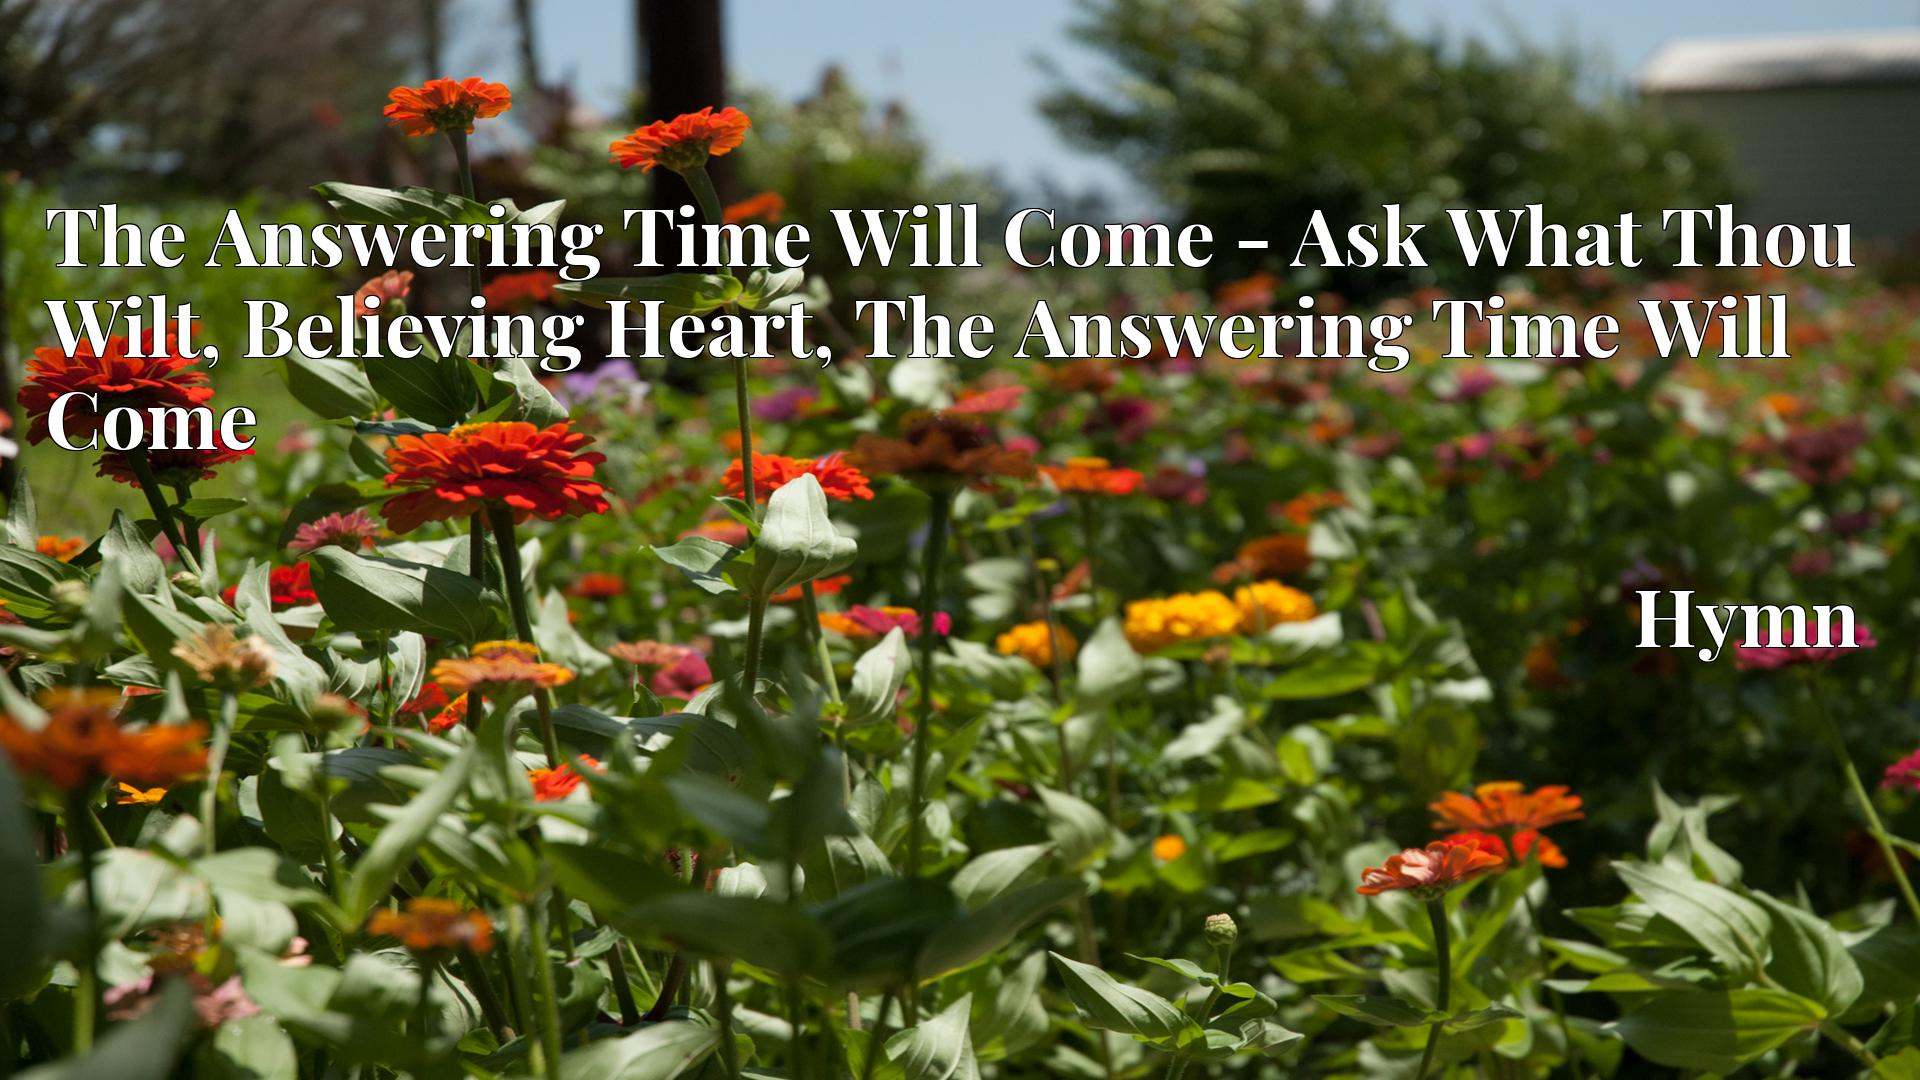 The Answering Time Will Come - Ask What Thou Wilt, Believing Heart, The Answering Time Will Come Hymn